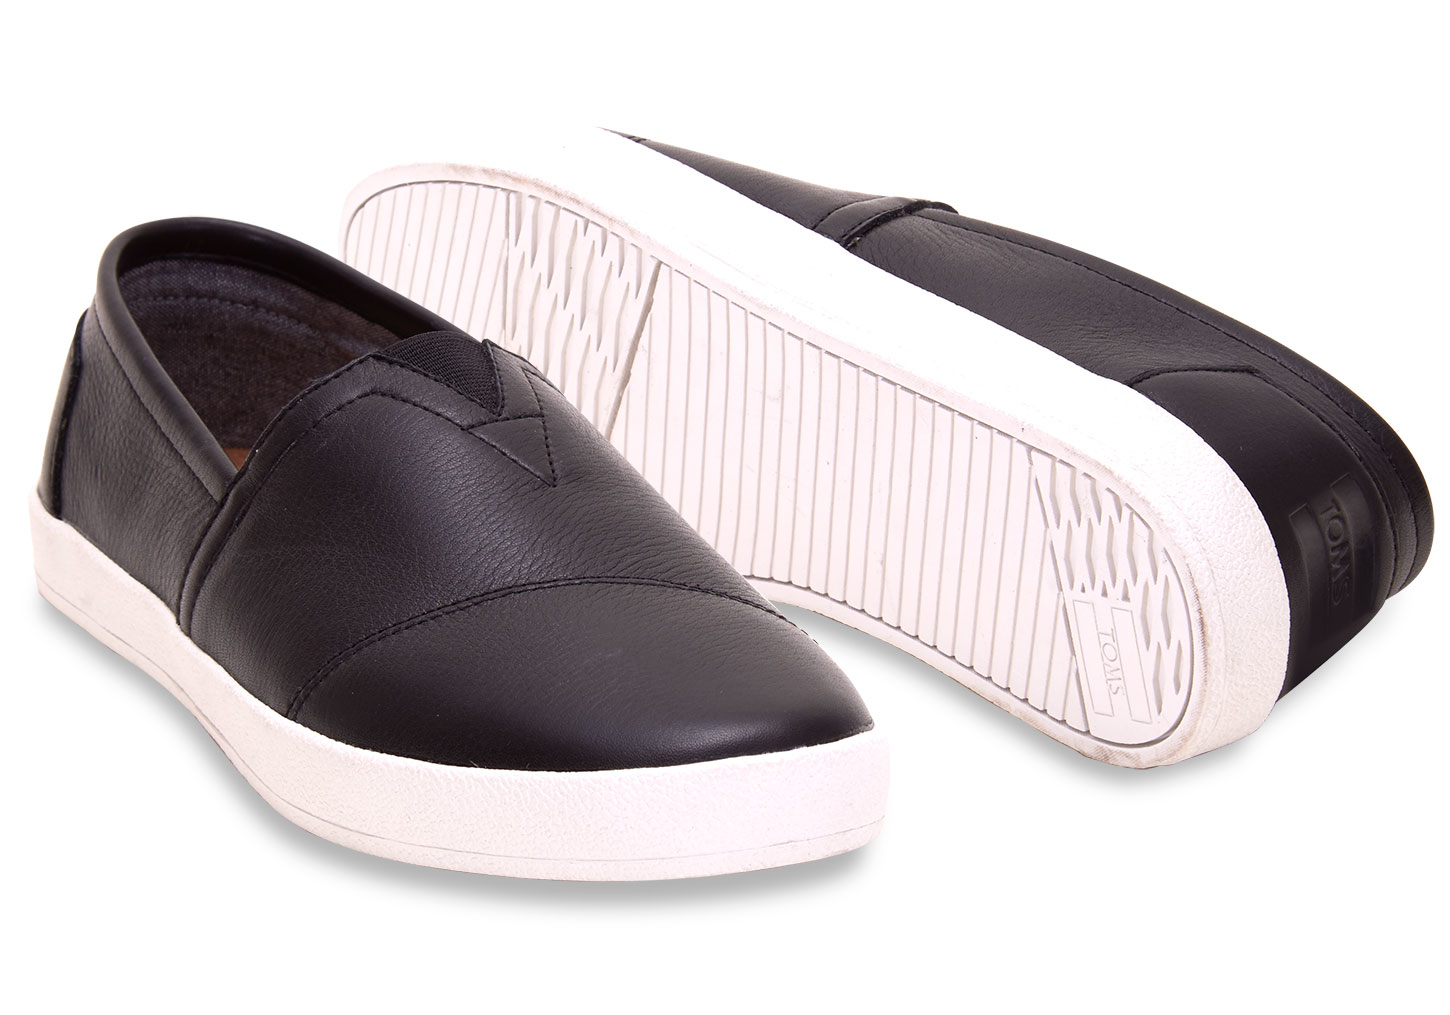 Boohoo Mens Slip On Shoes